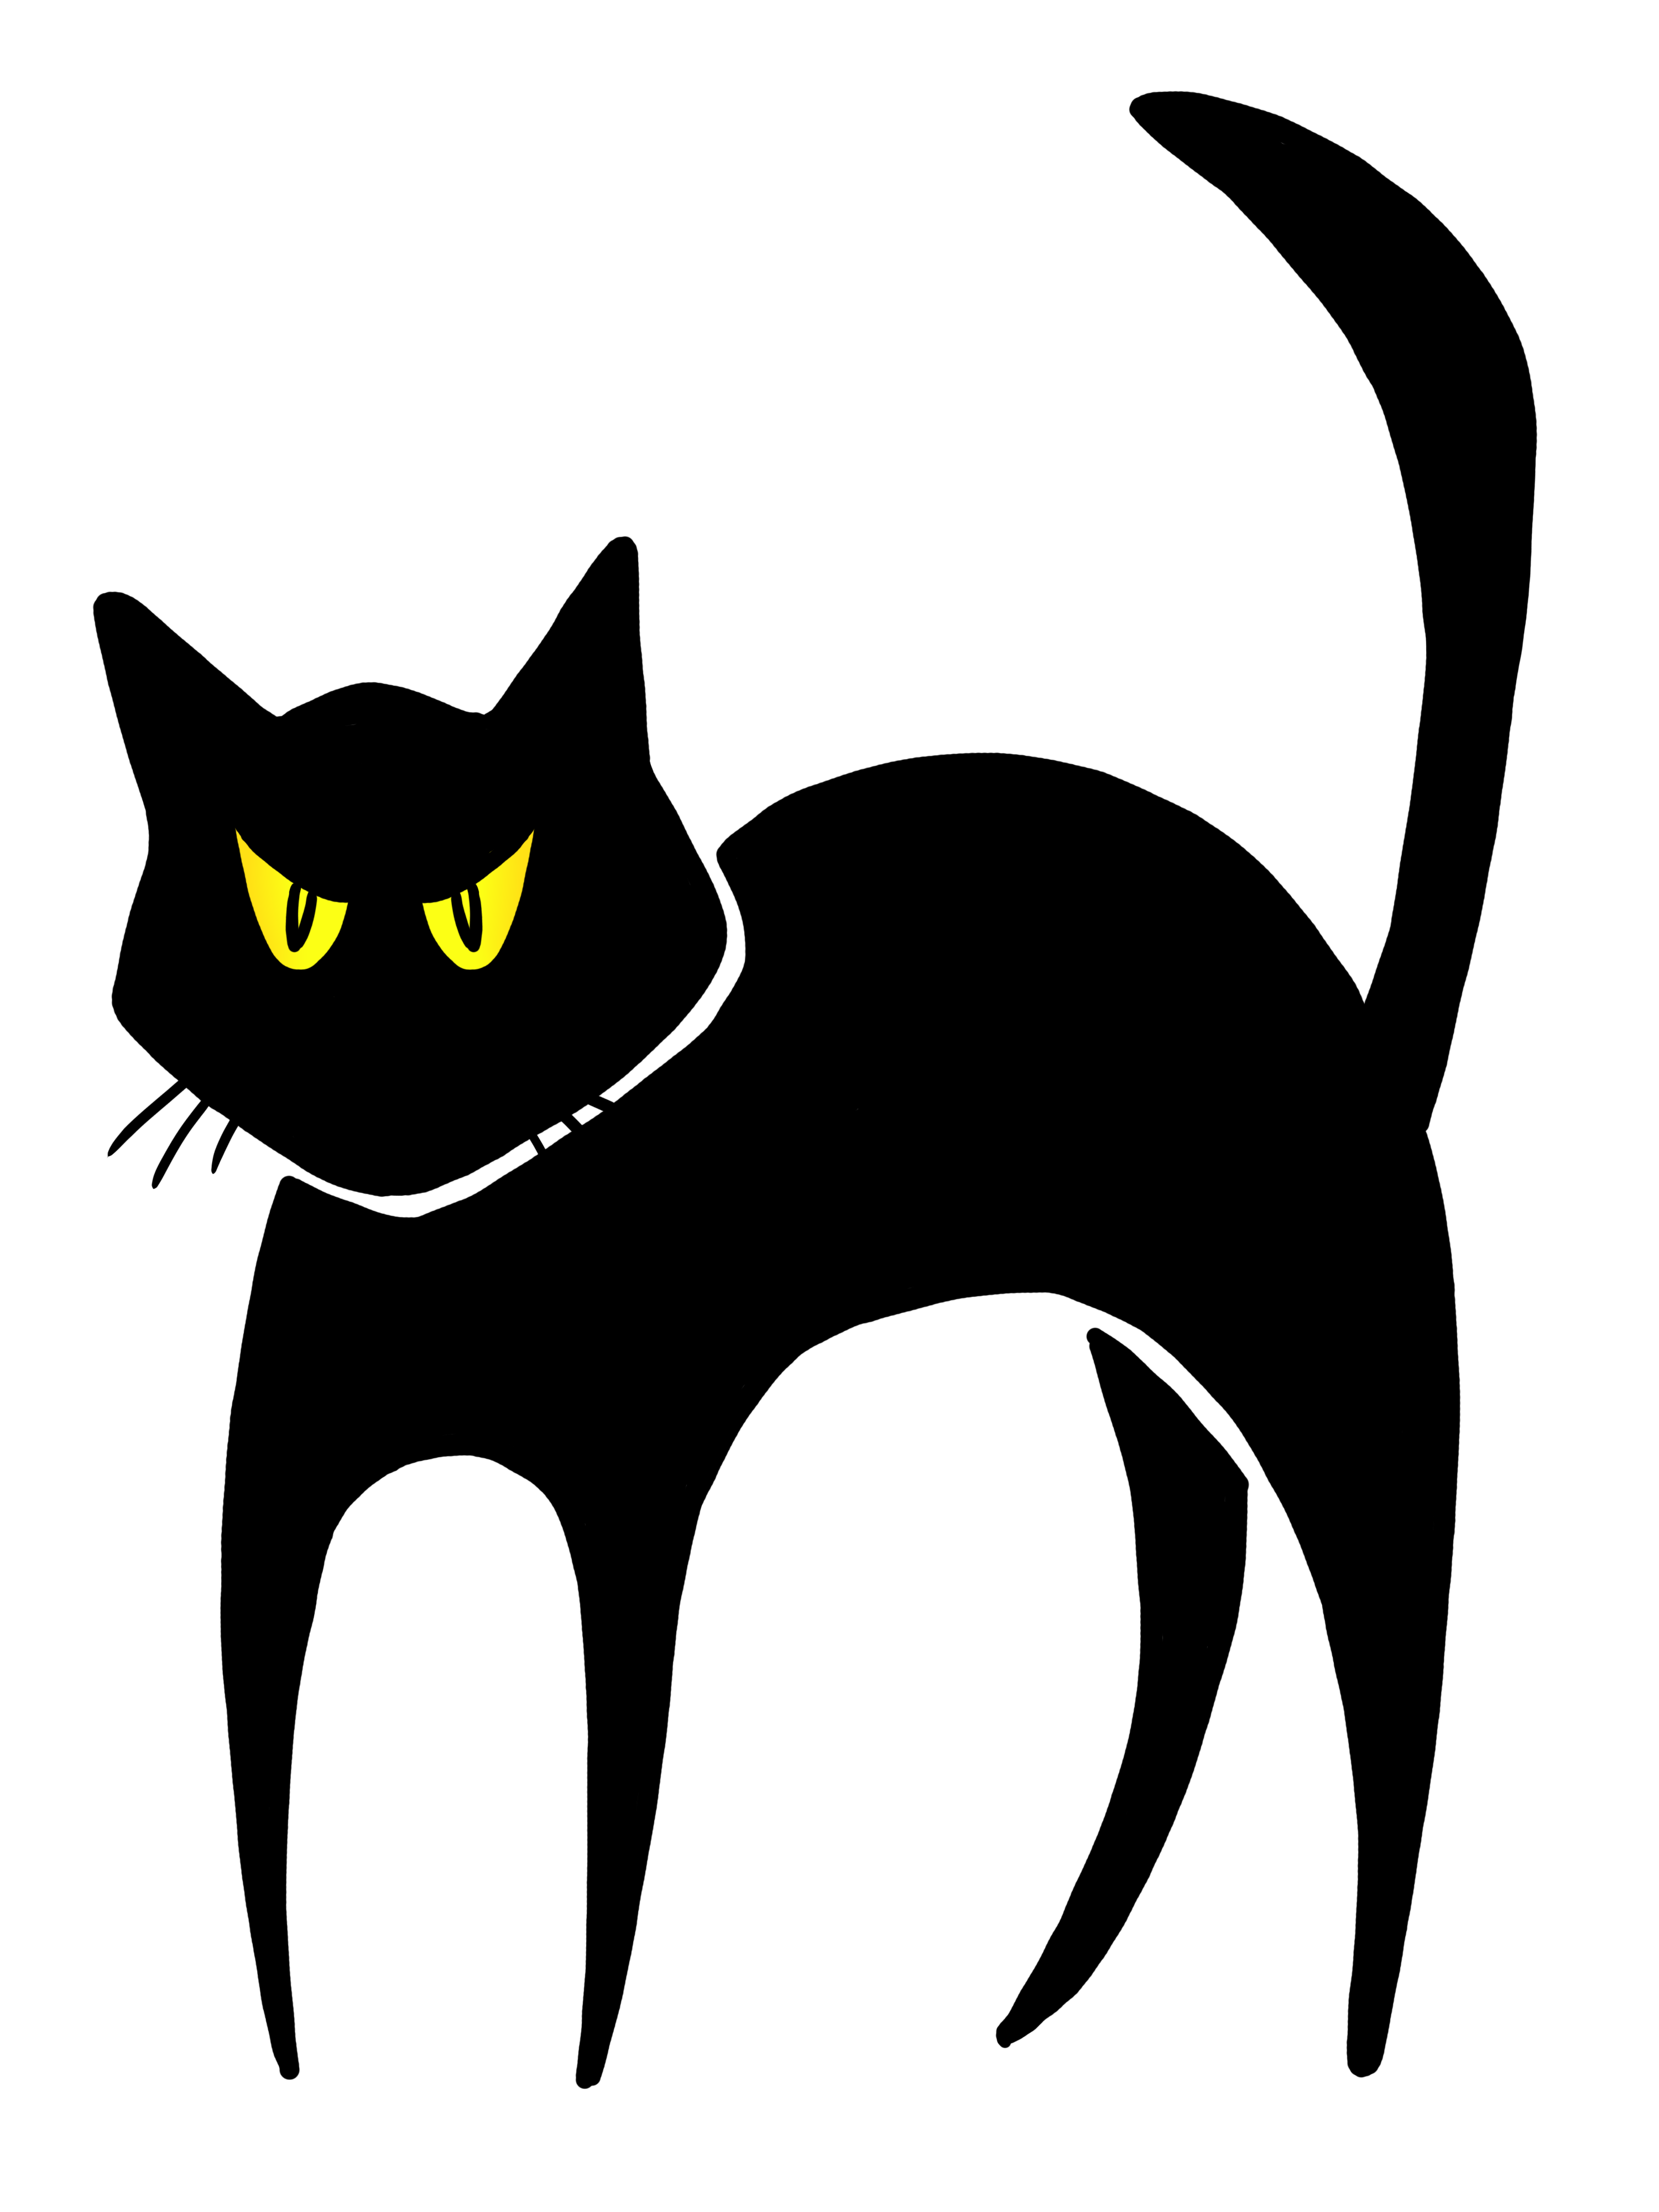 Free black cat images download clip art on png